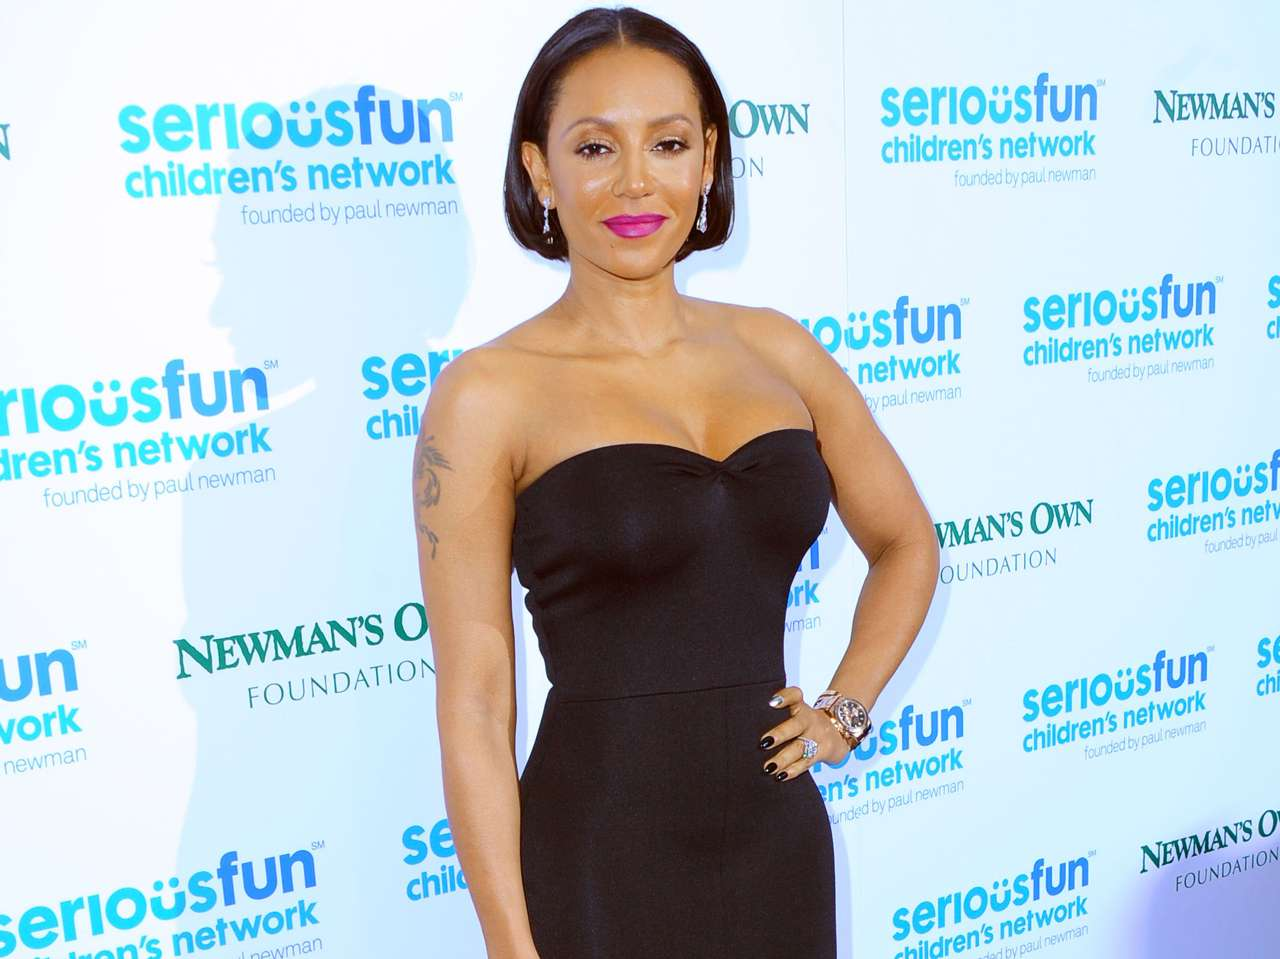 Melanie Brown se separó recientemente de su esposo. Foto: Getty Images